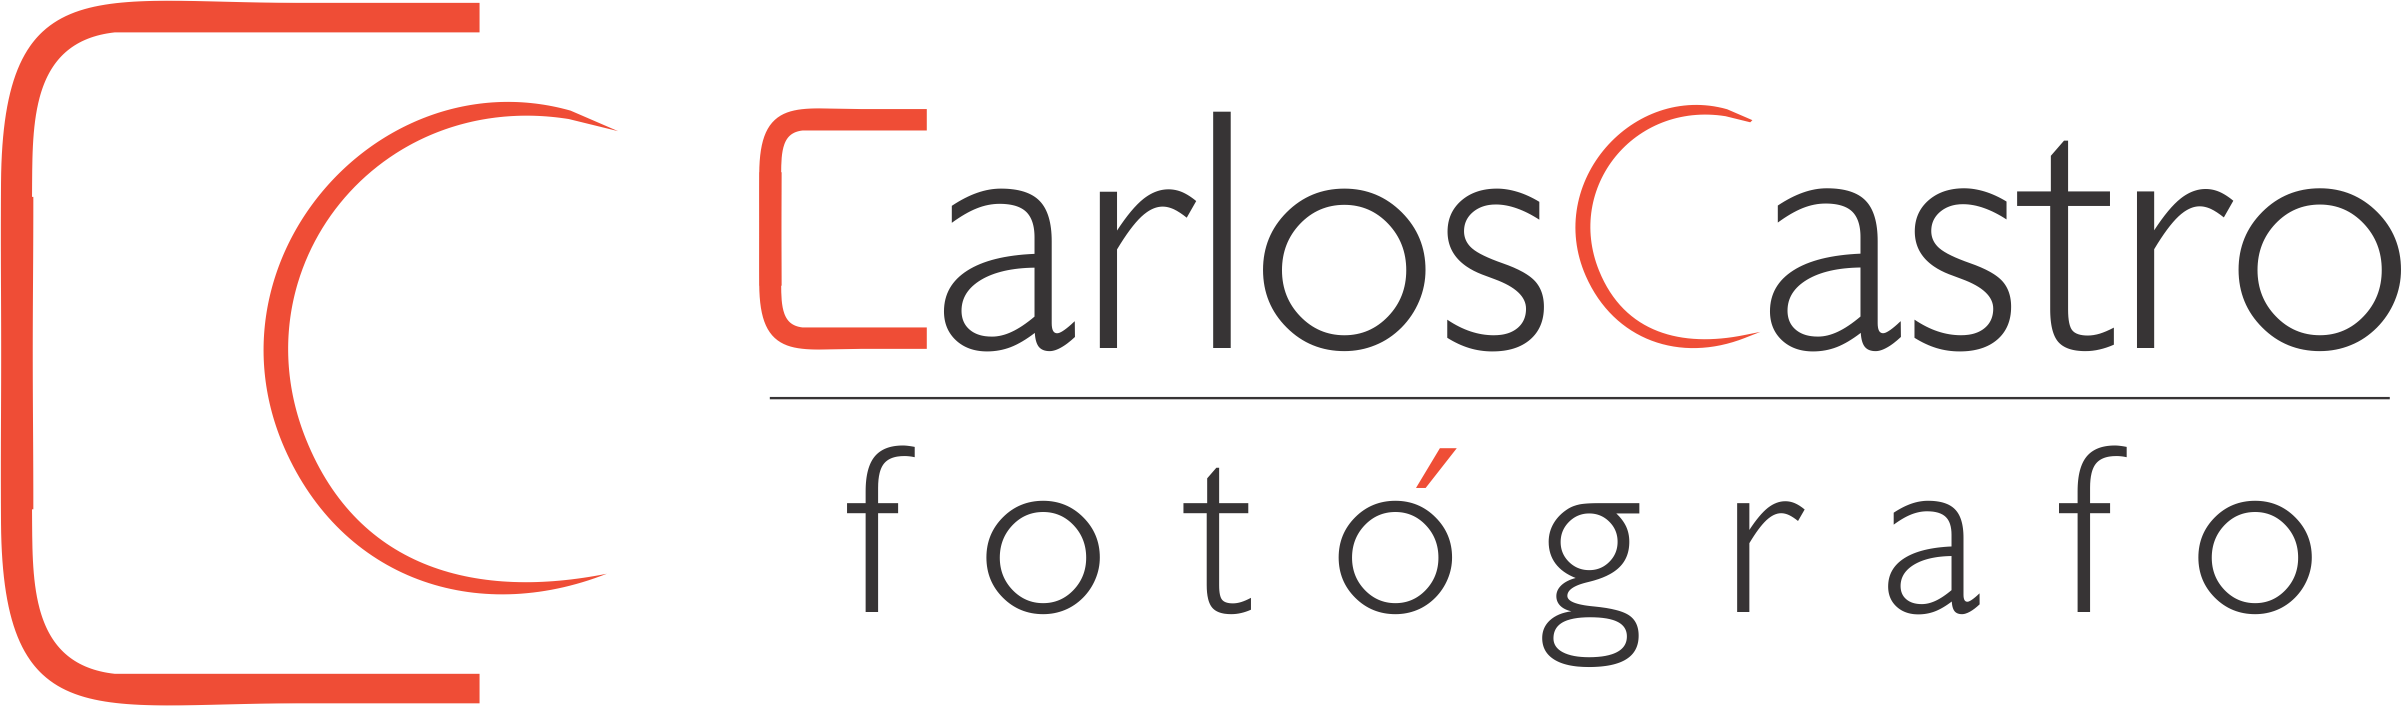 Carlos Castro Fotógrafo ::